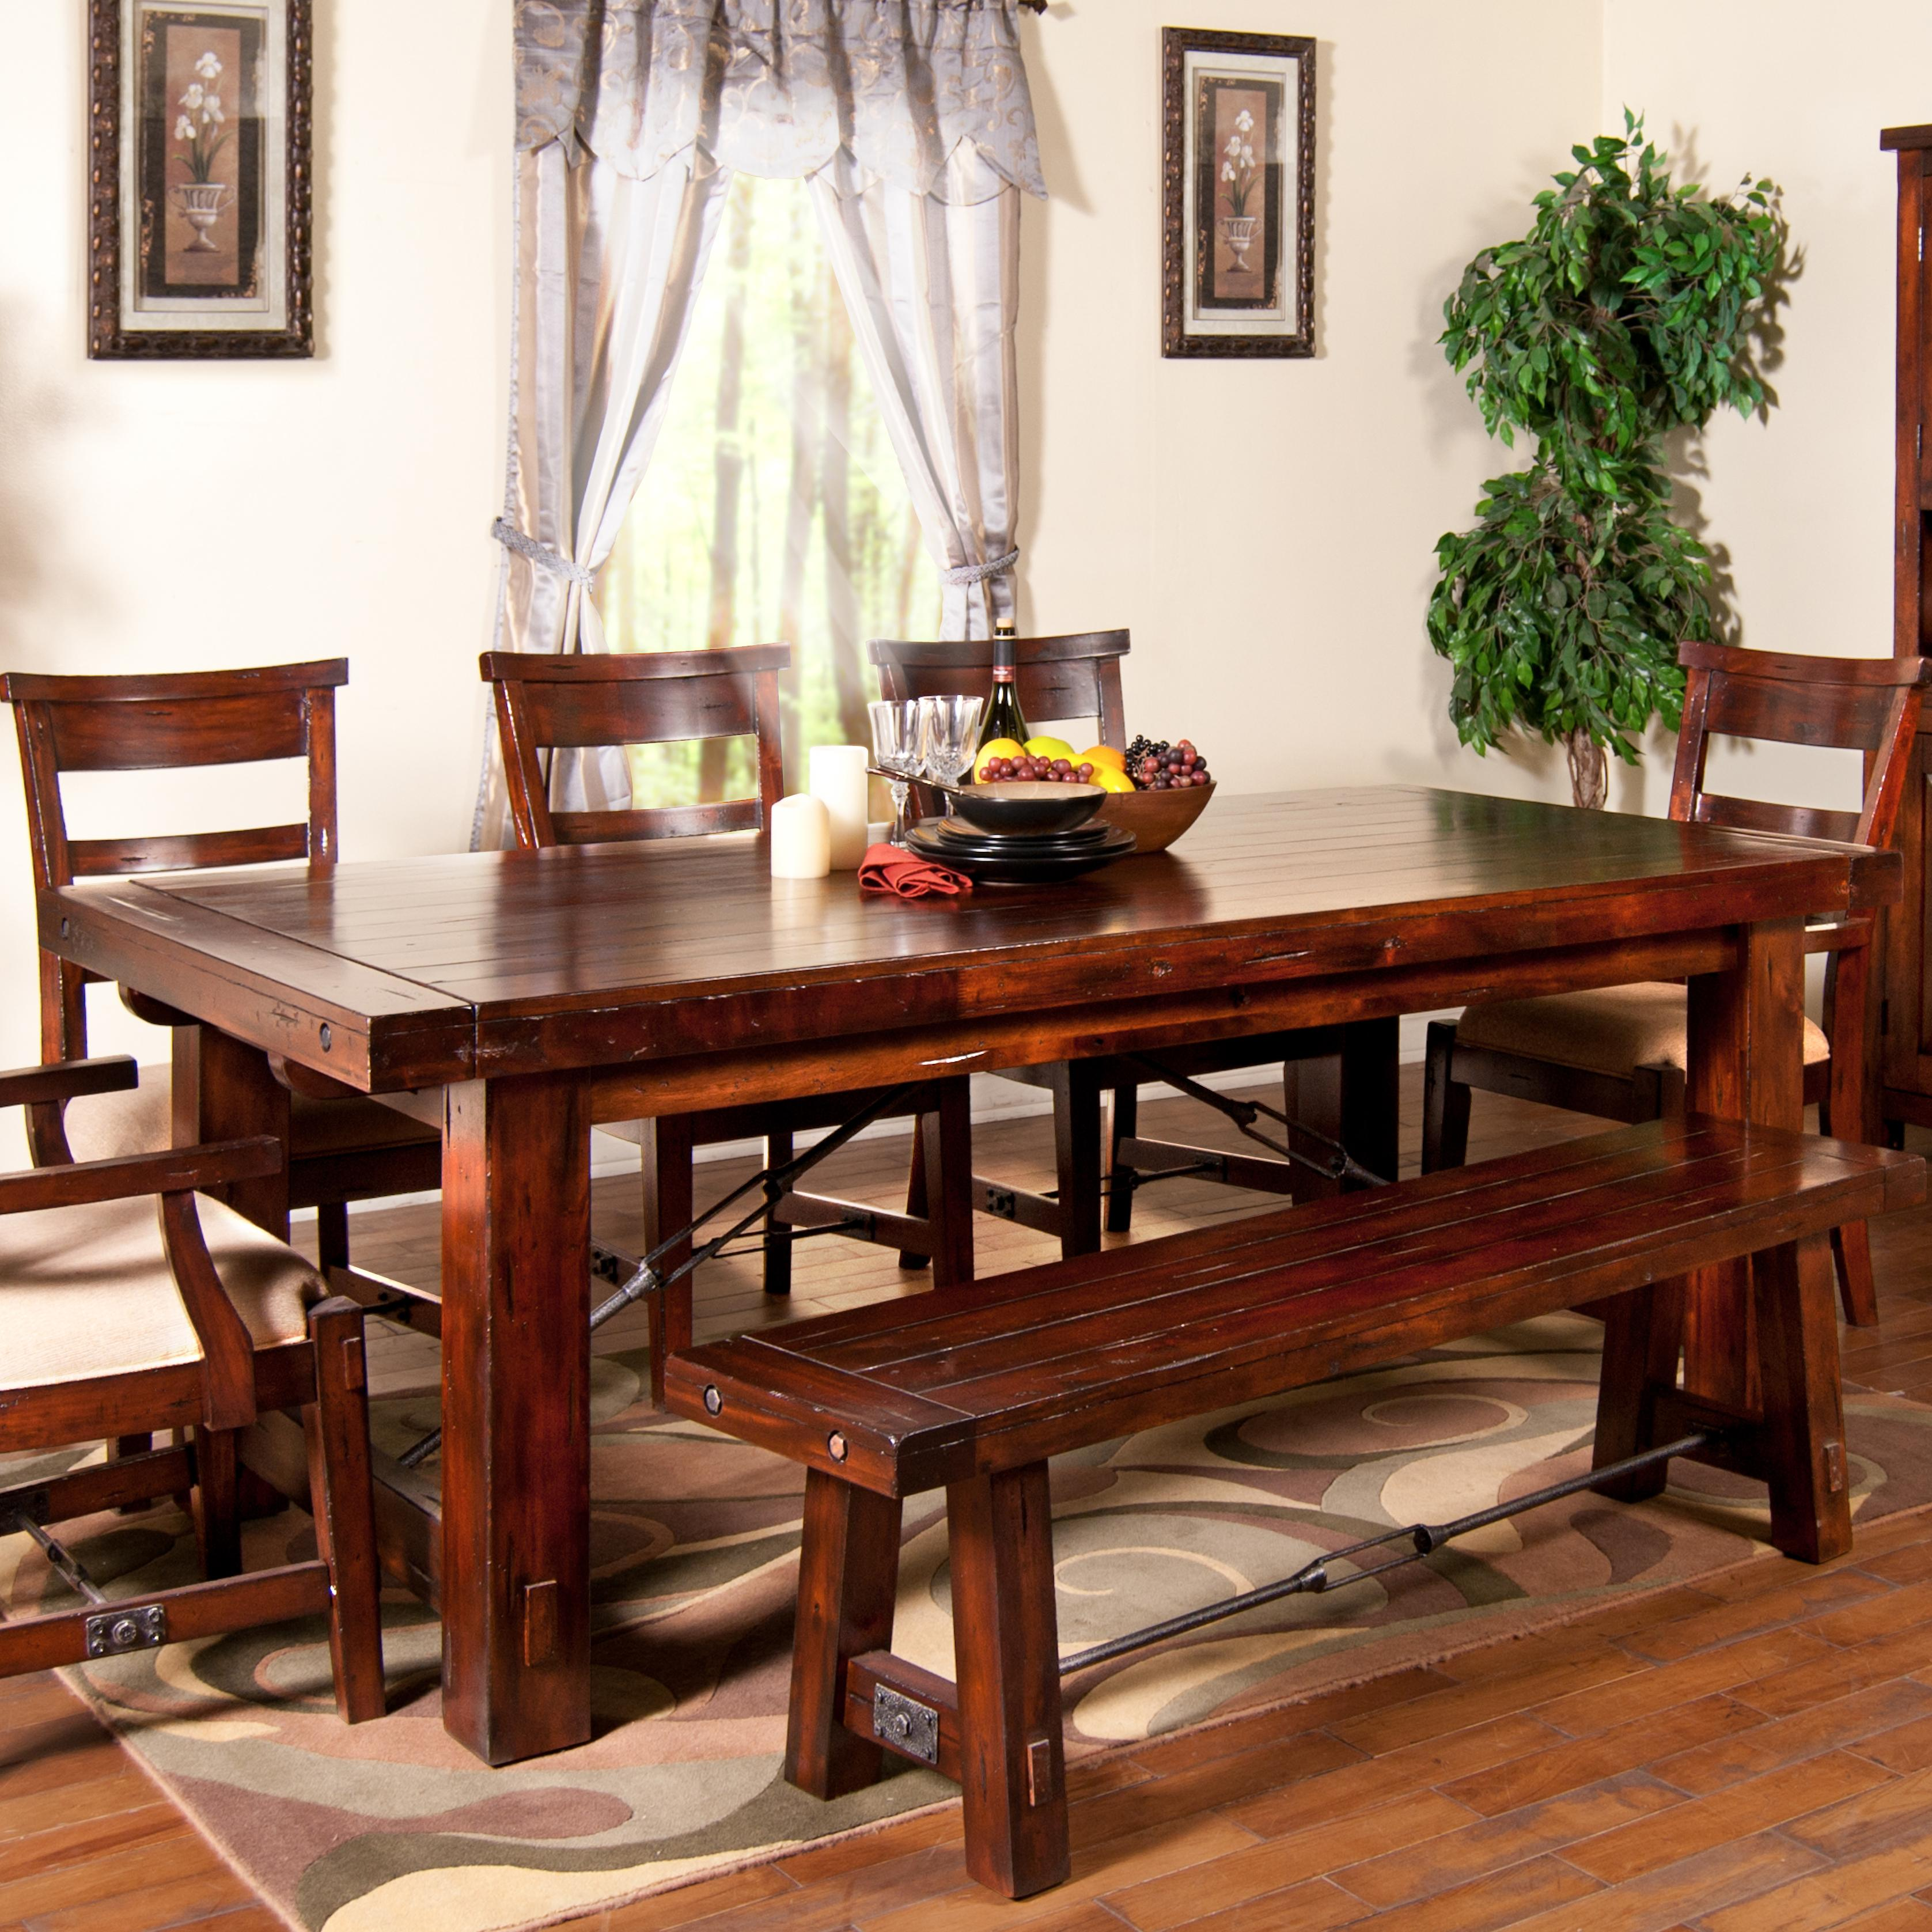 rectangular kitchen table rectangle kitchen table Rectangular kitchen table Photo 12